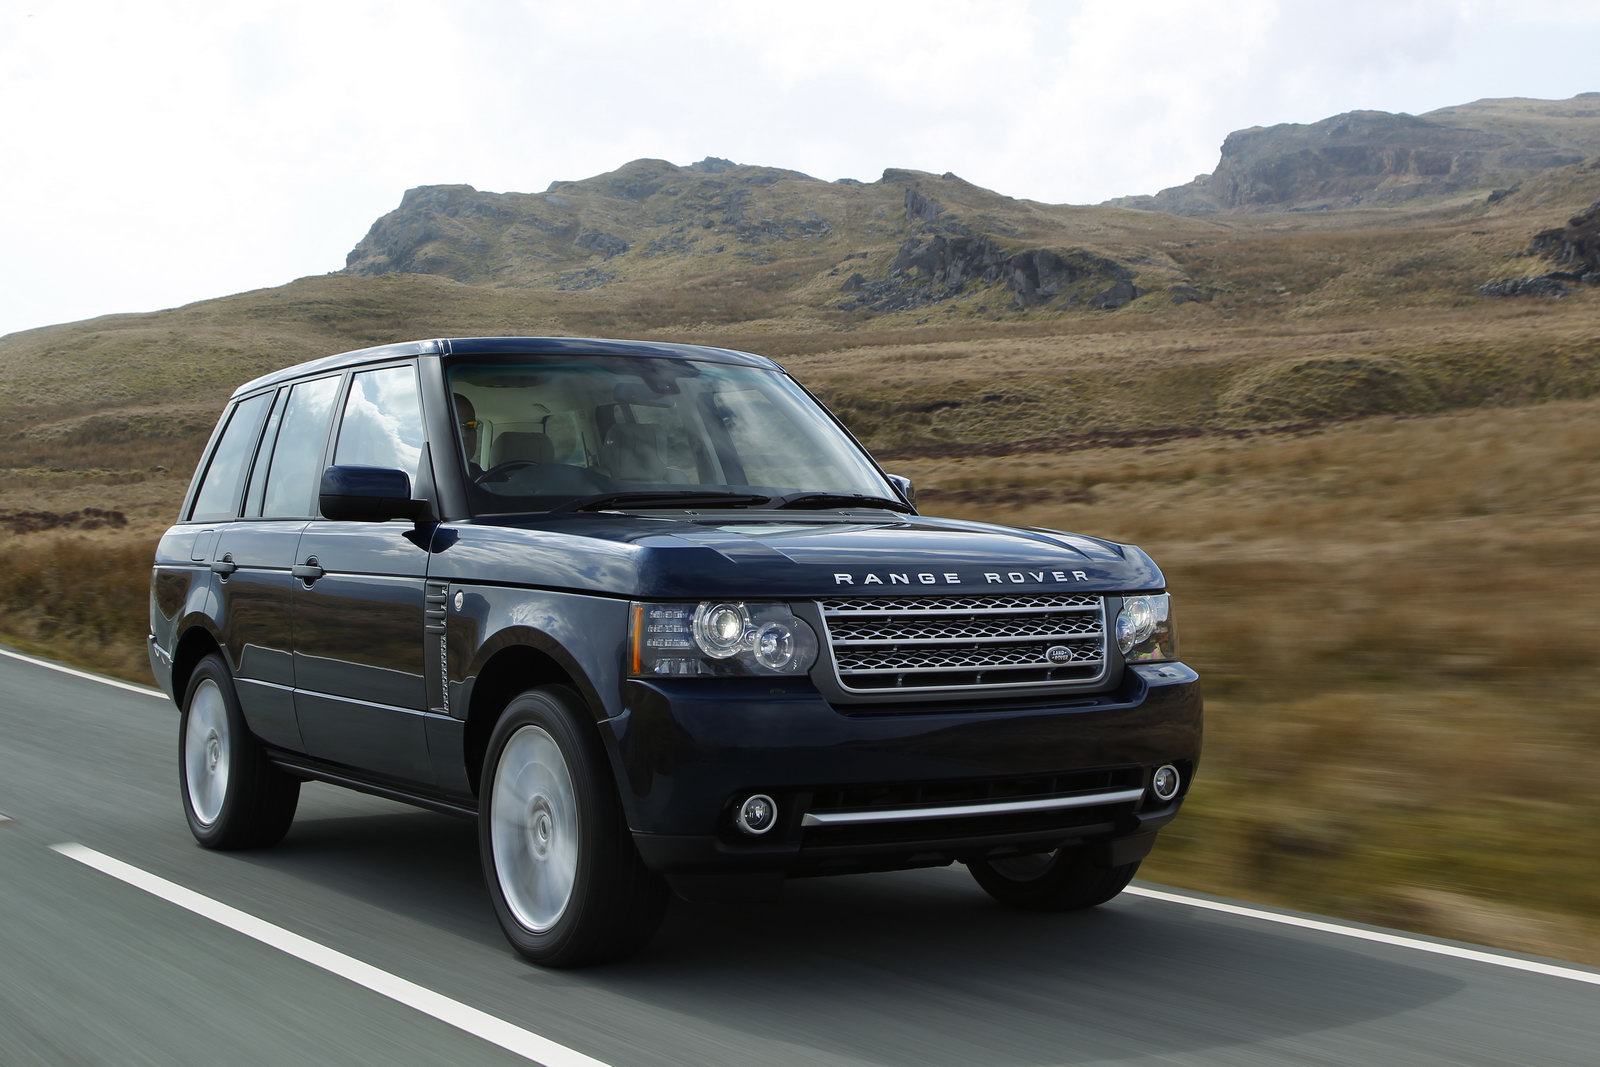 Revised 2011 Range Rover With New 313HP V8 Diesel